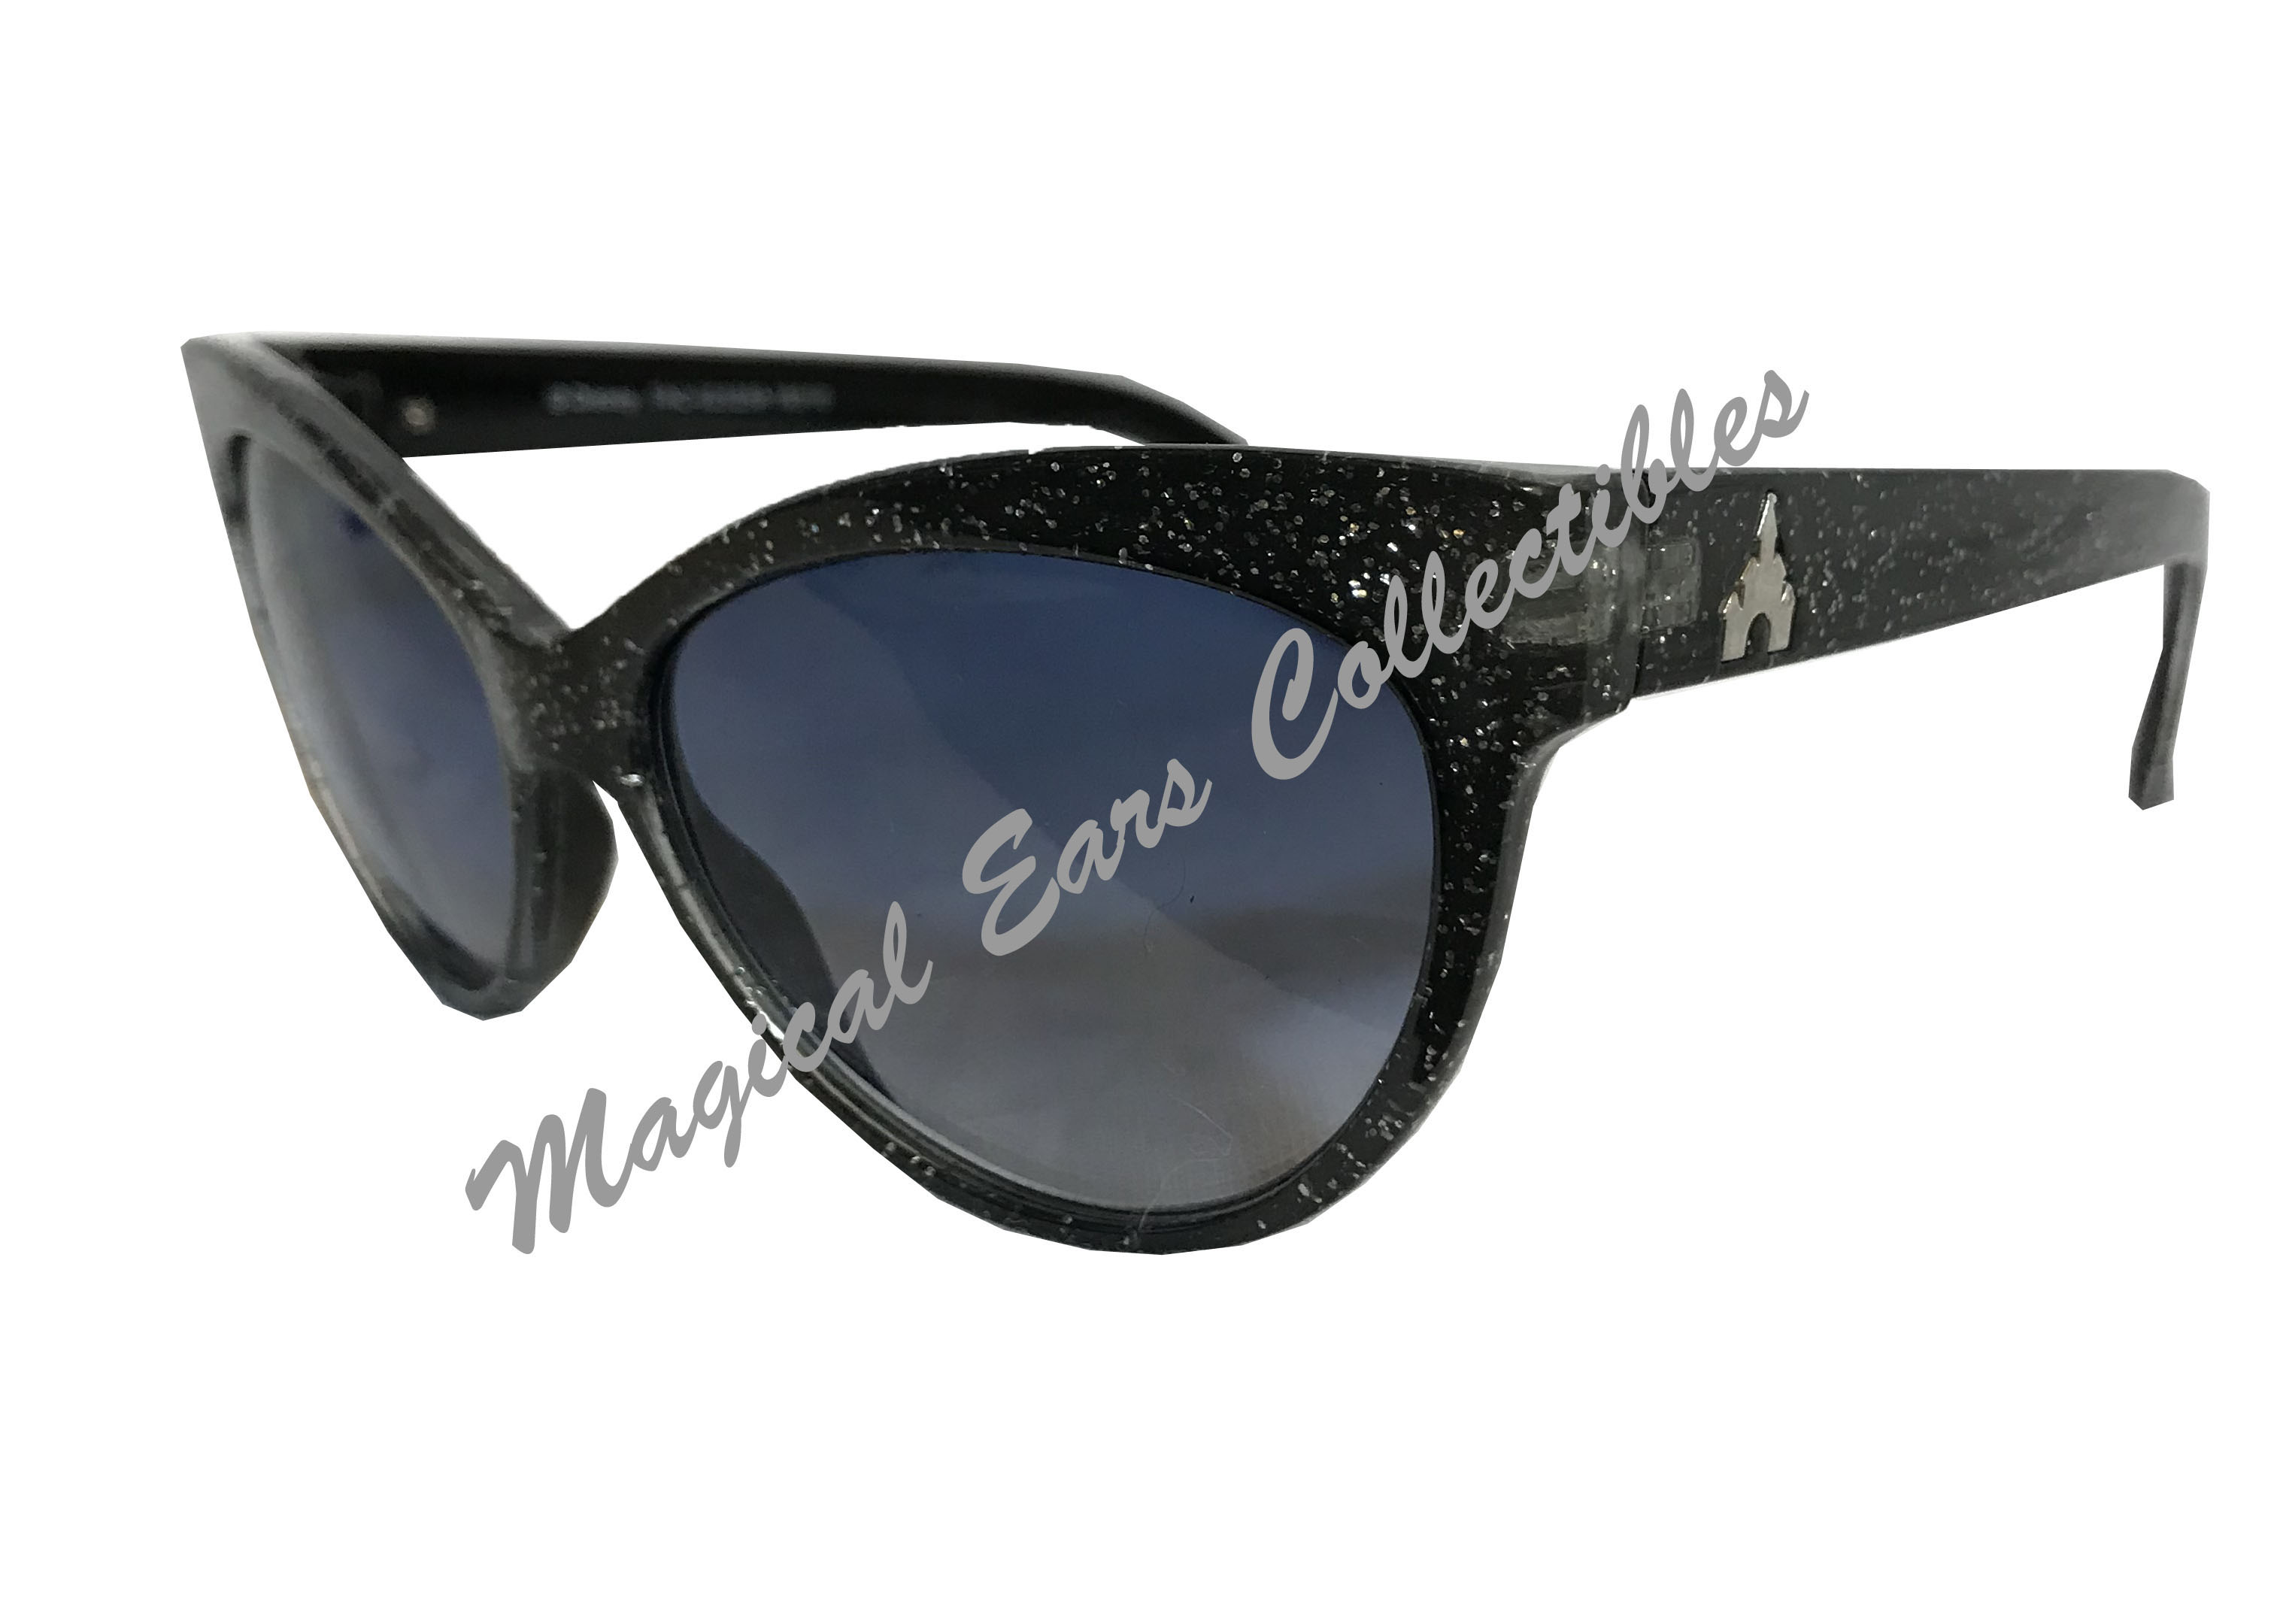 Disney Sunglasses - Cinderella Castle - Speckle Black